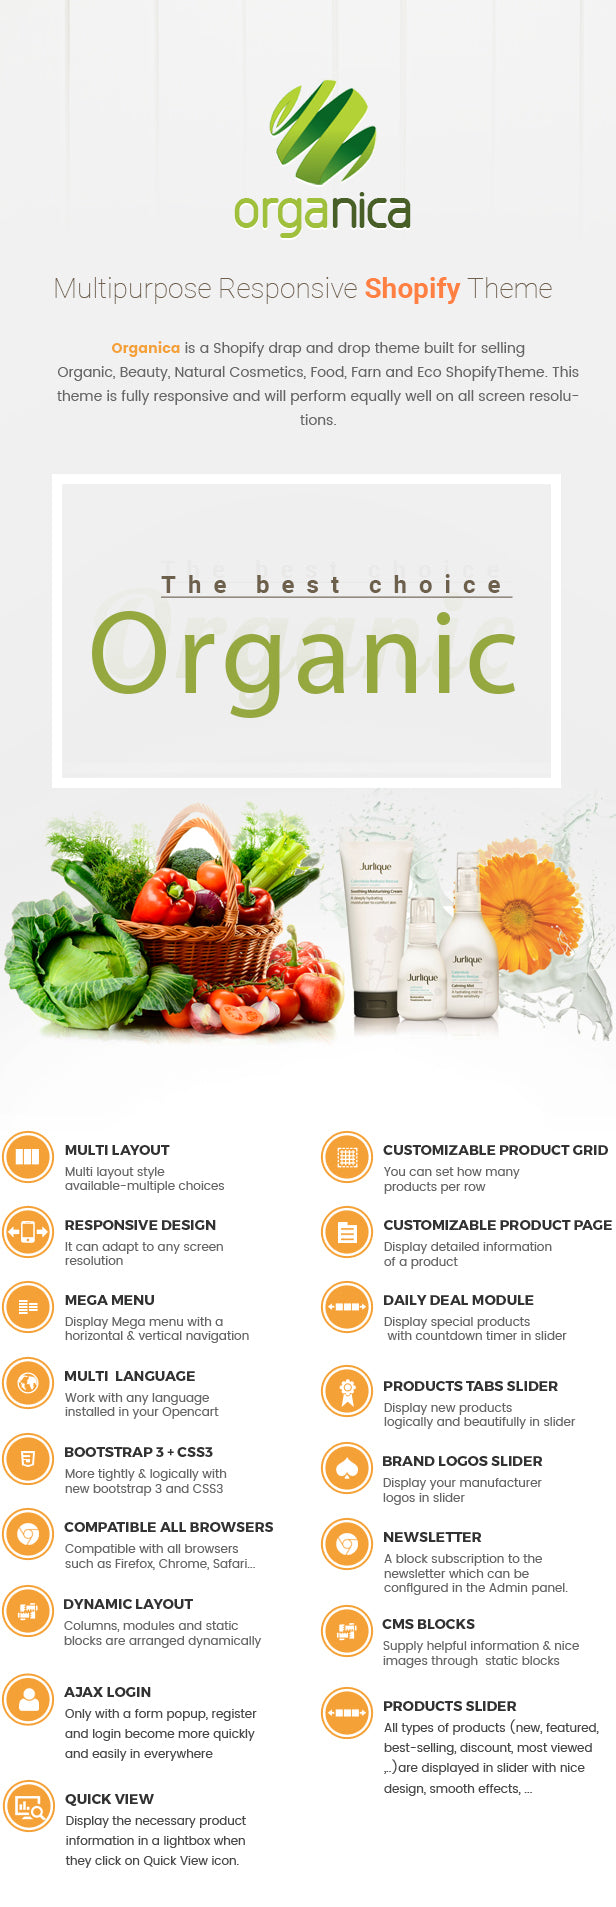 Organica - Organic, Beauty, Natural Cosmetics, Food, Farn and Eco drag and drop Shopify Theme